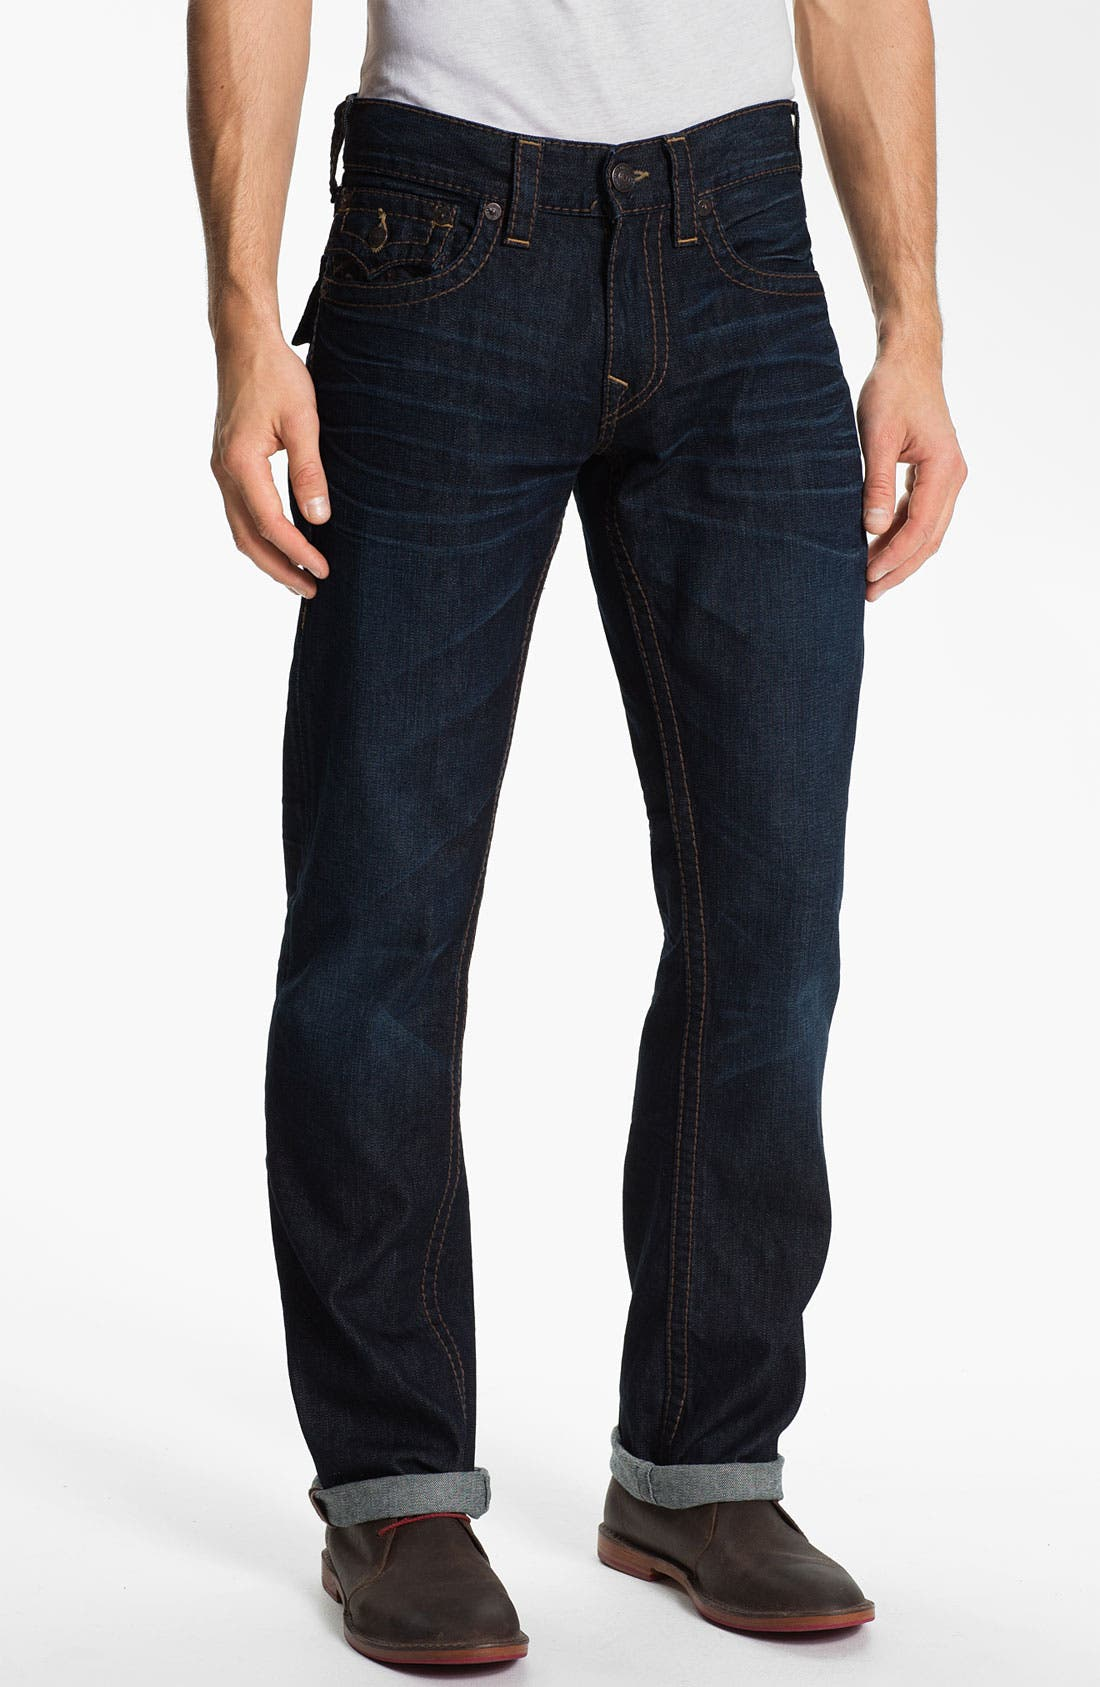 Alternate Image 2  - True Religion Brand Jeans 'Ricky' Straight Leg Jeans (Overland) (Online Exclusive)